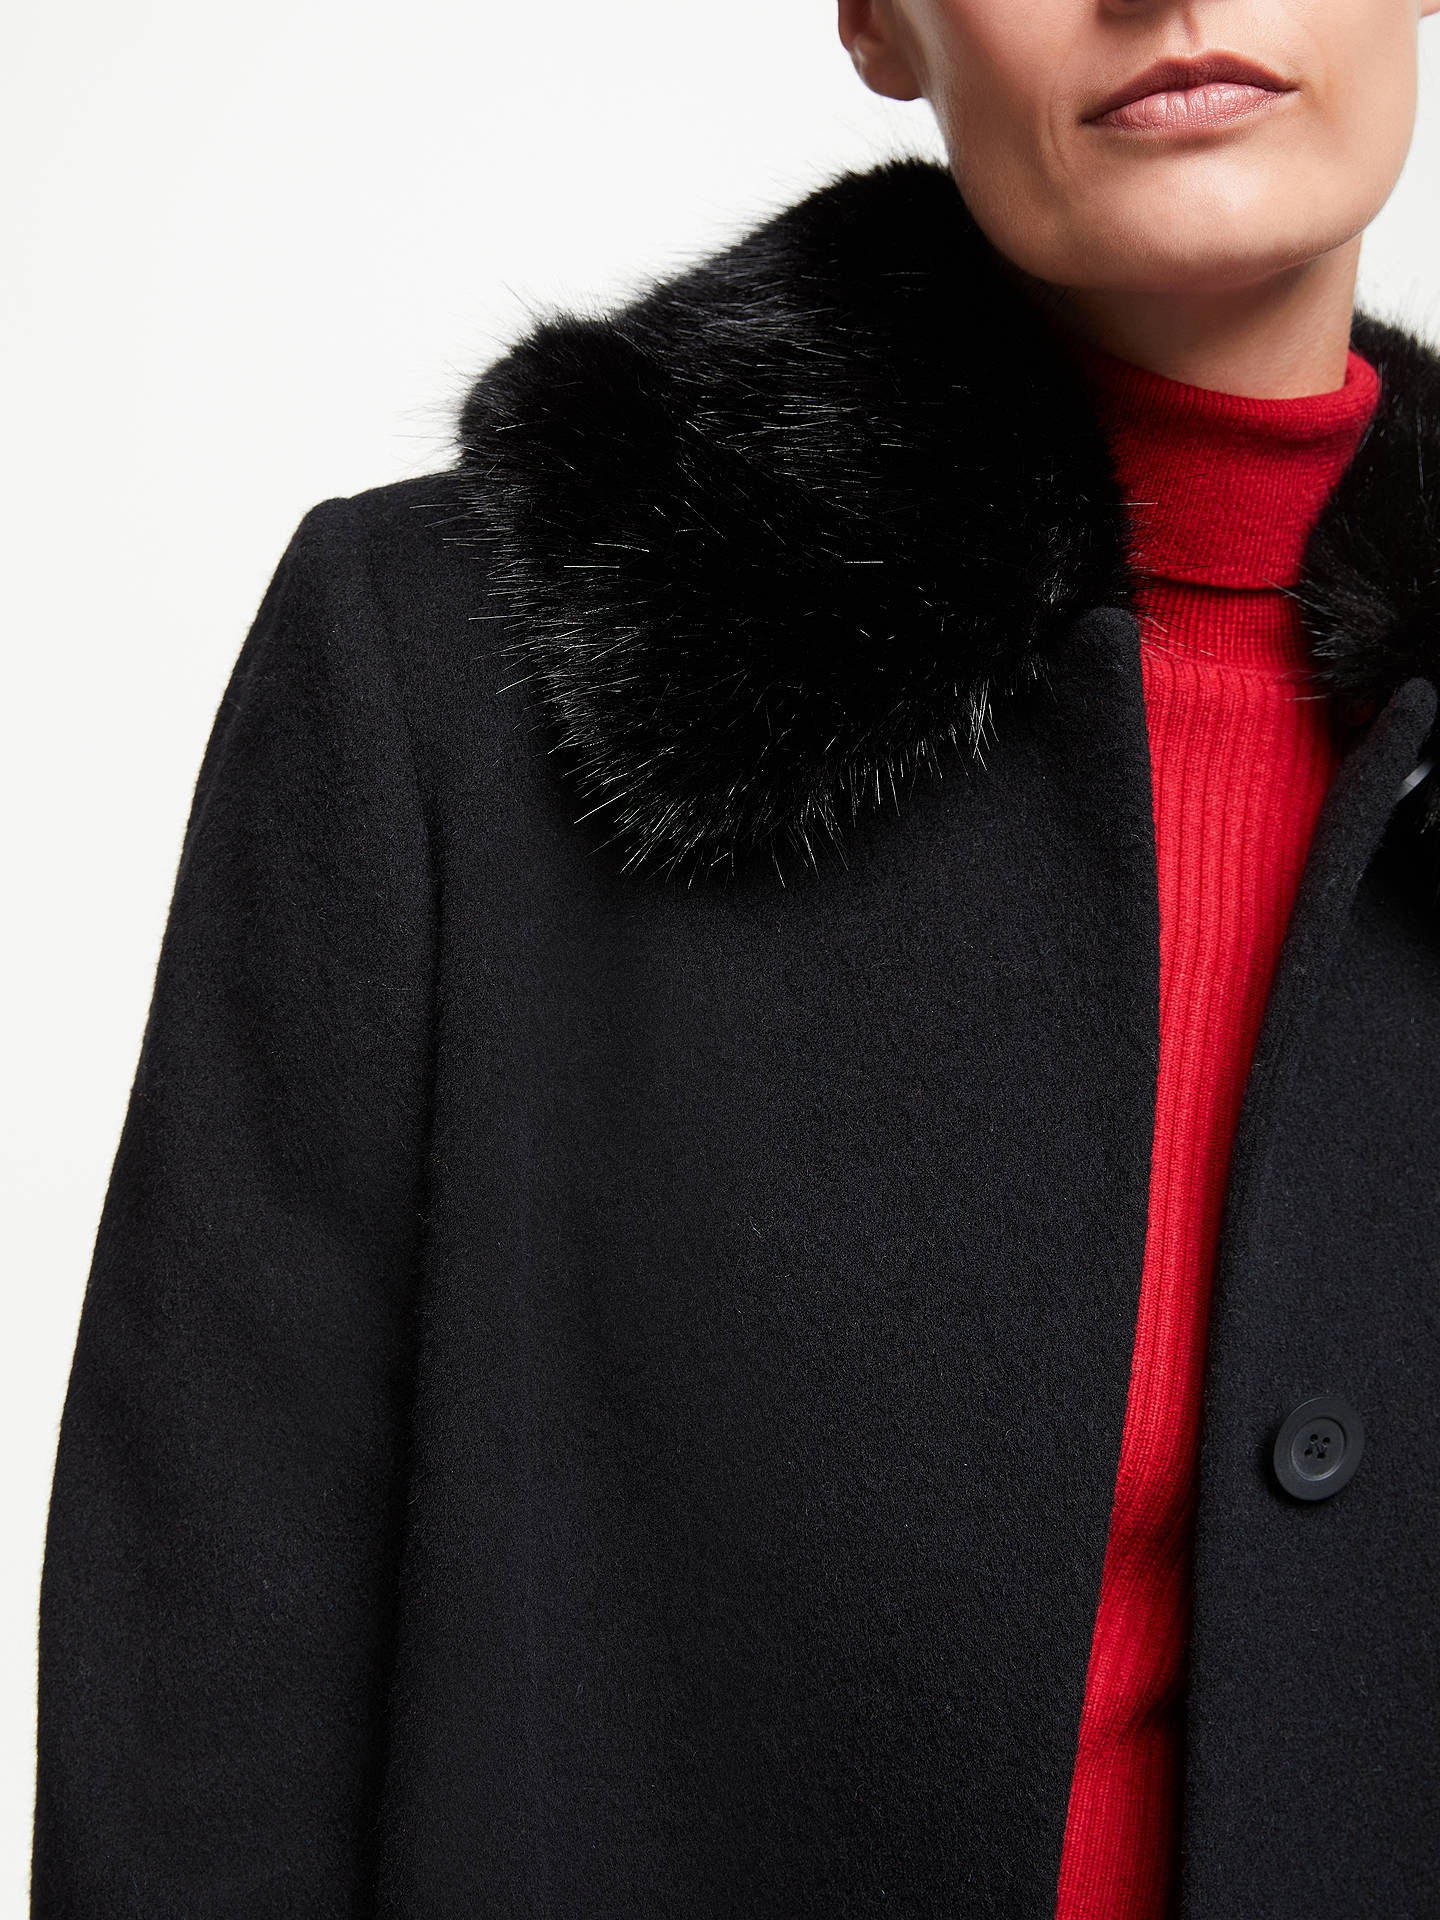 BuyJohn Lewis & Partners Detachable Fur Collar Coat, Black, 8 Online at johnlewis.com